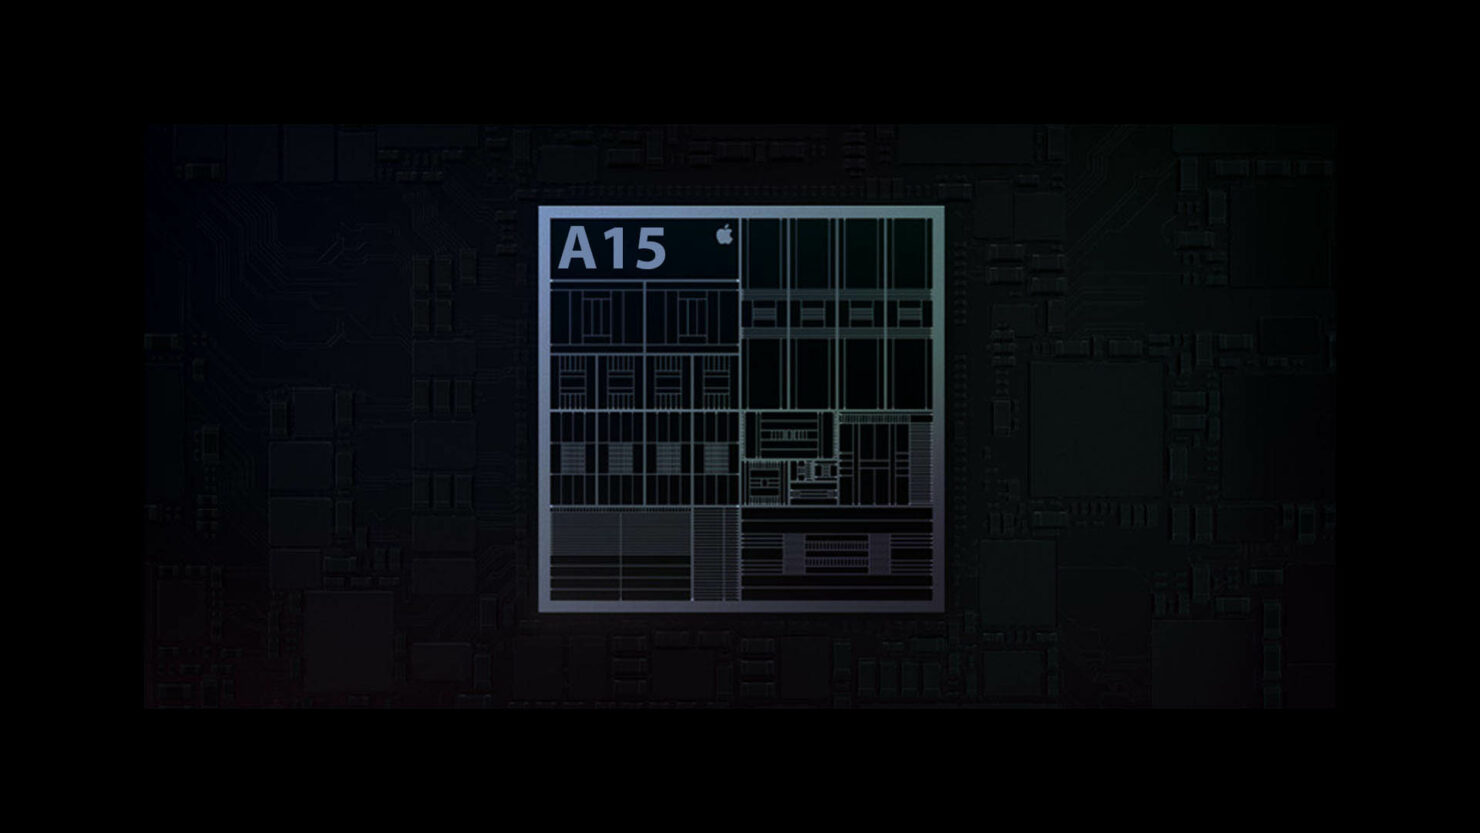 Apple Rumored to Have Ordered More Than 100 Million A15 Bionic Chips From TSMC